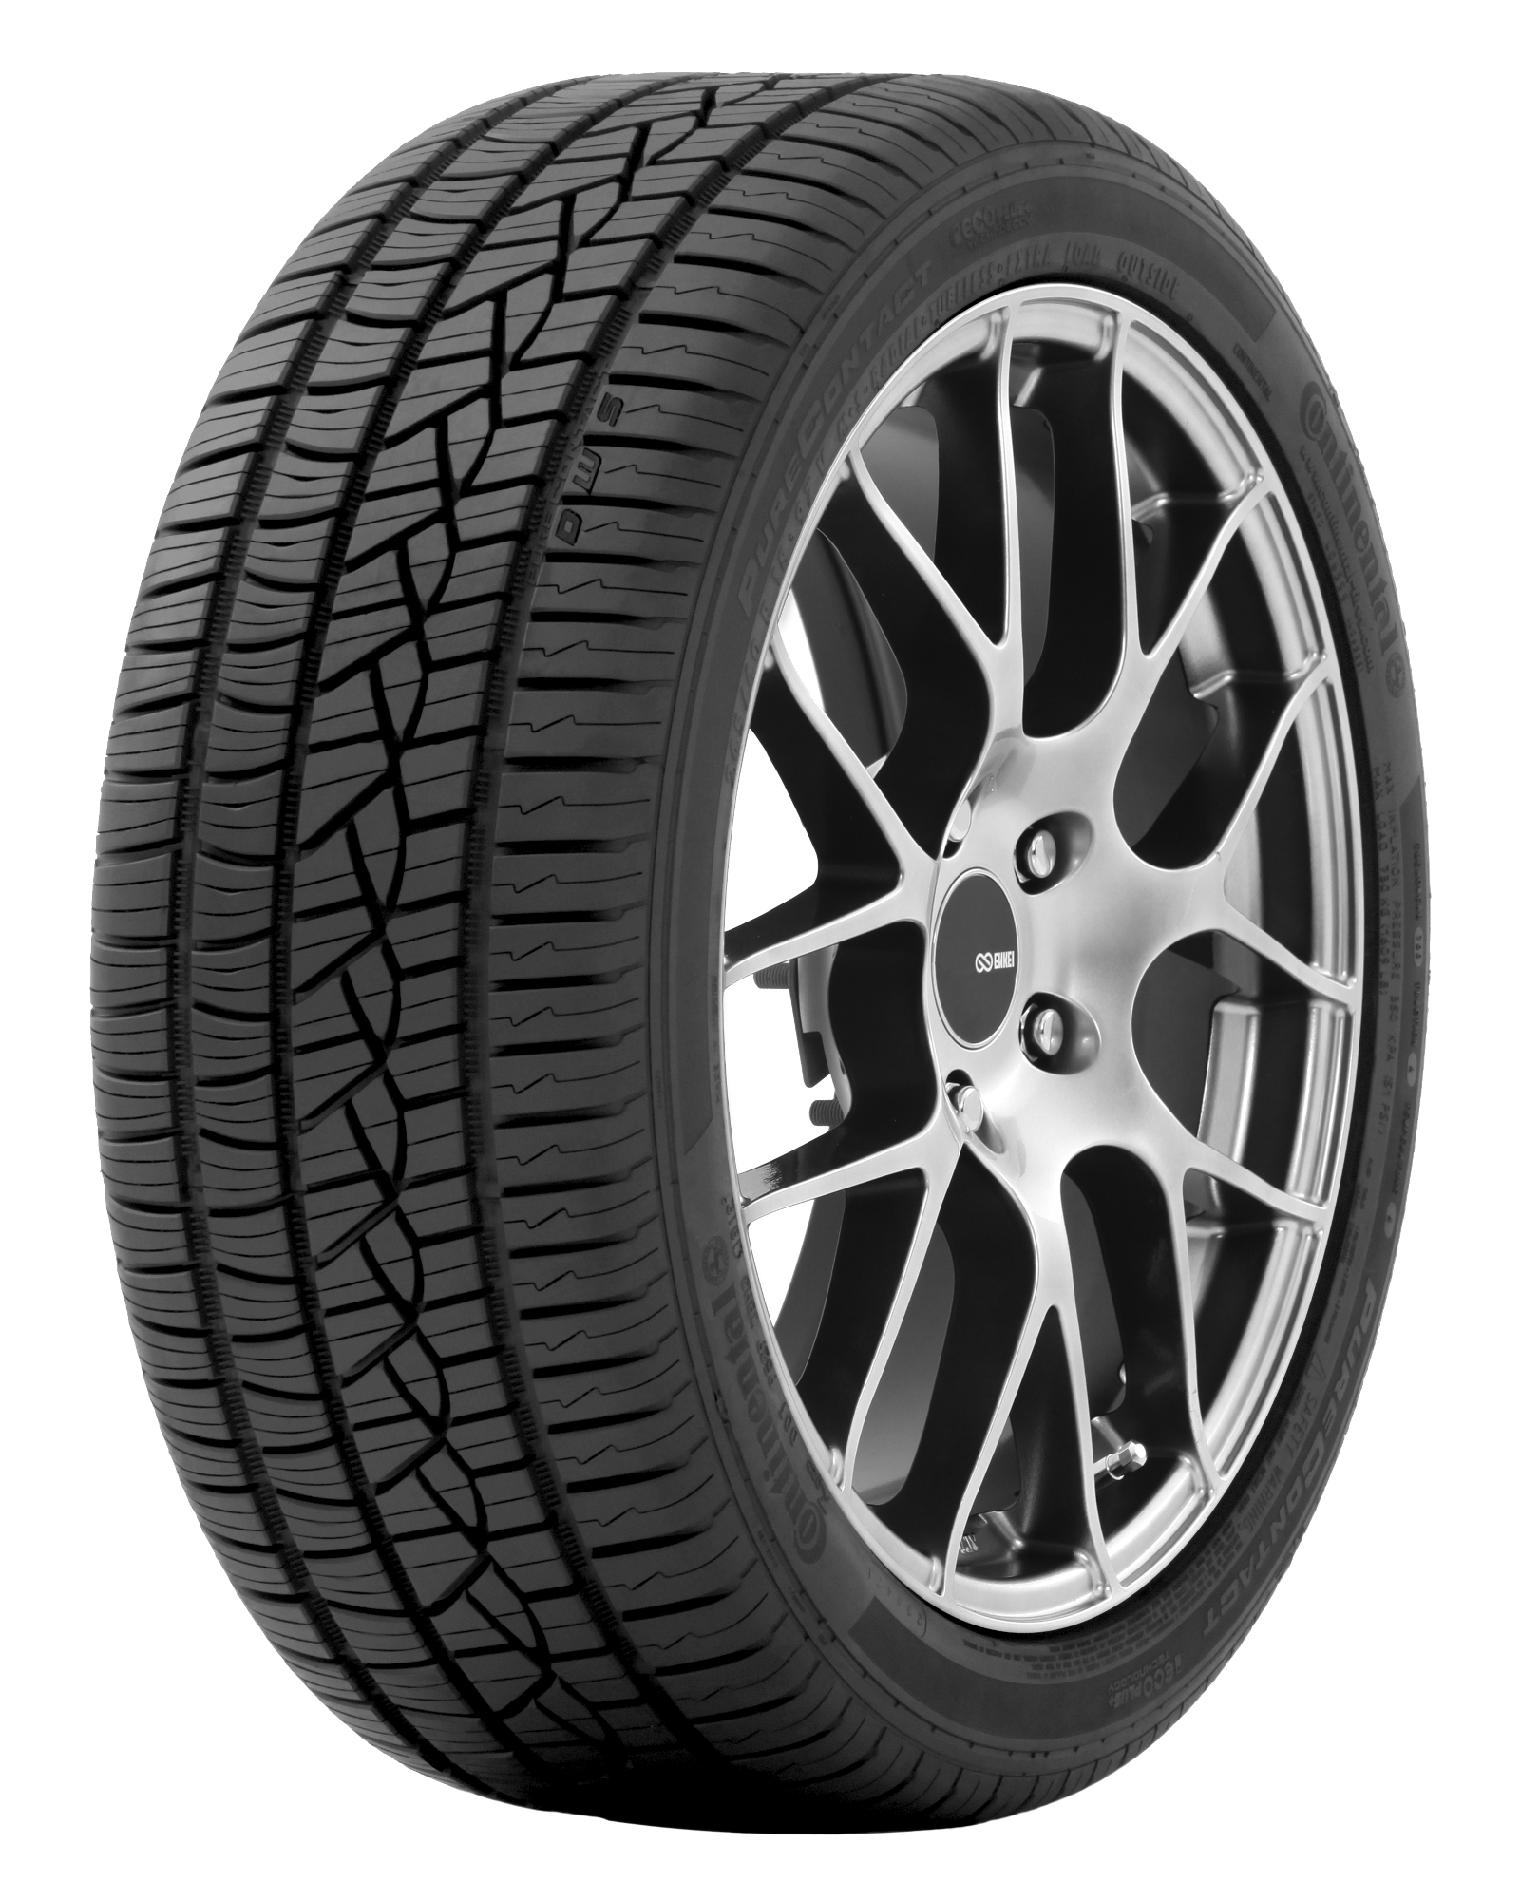 Continental Pure Contact - 245/45R18 97V BW - All Season Tire